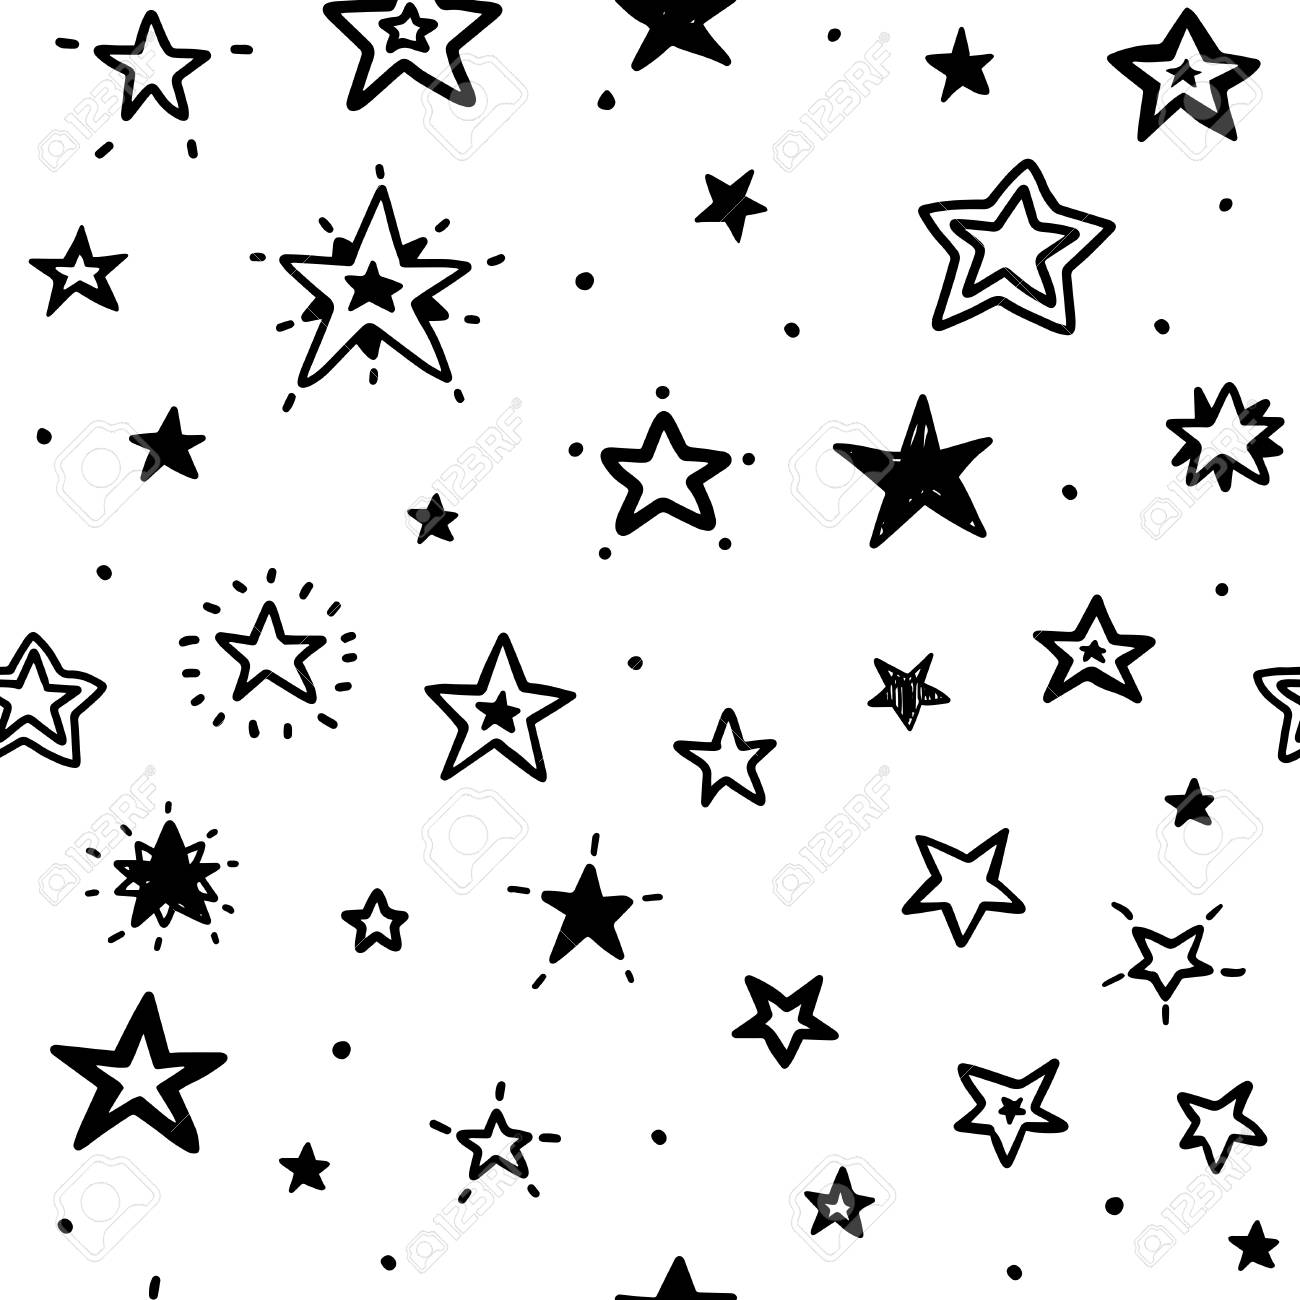 Doodle Star Seamless Pattern Hand Drawn Doodle Stars Can Be Royalty Free Cliparts Vectors And Stock Illustration Image 120174858 Doodle star is a new and creative drawing app for kids 3 and above. doodle star seamless pattern hand drawn doodle stars can be